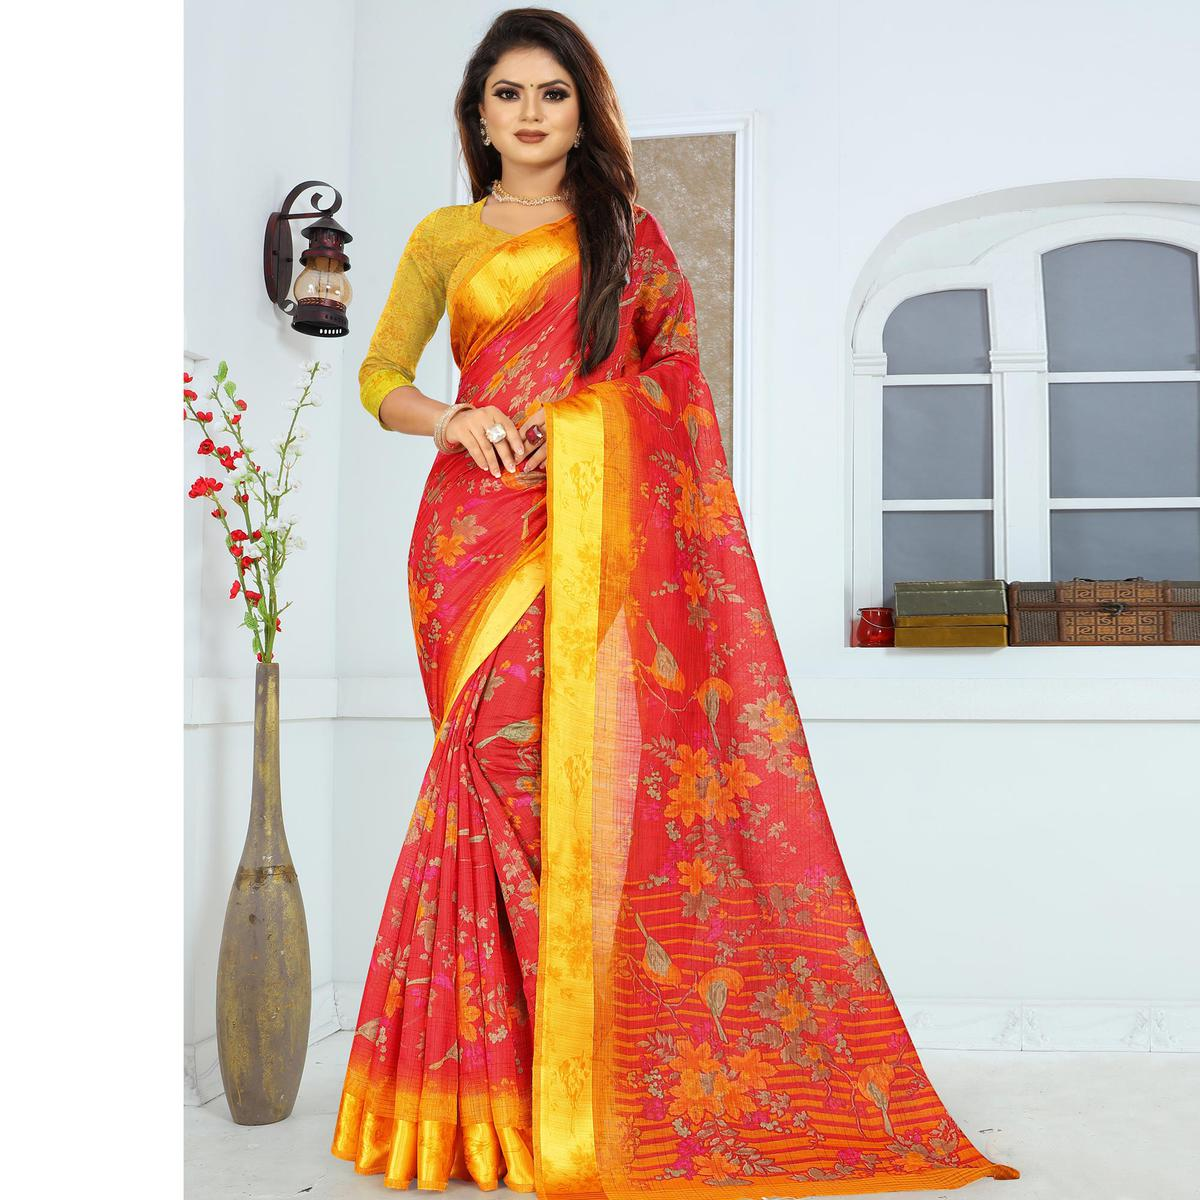 Marvellous Red Colored Casual Wear Floral Printed Linen Saree With Satin Patta Border